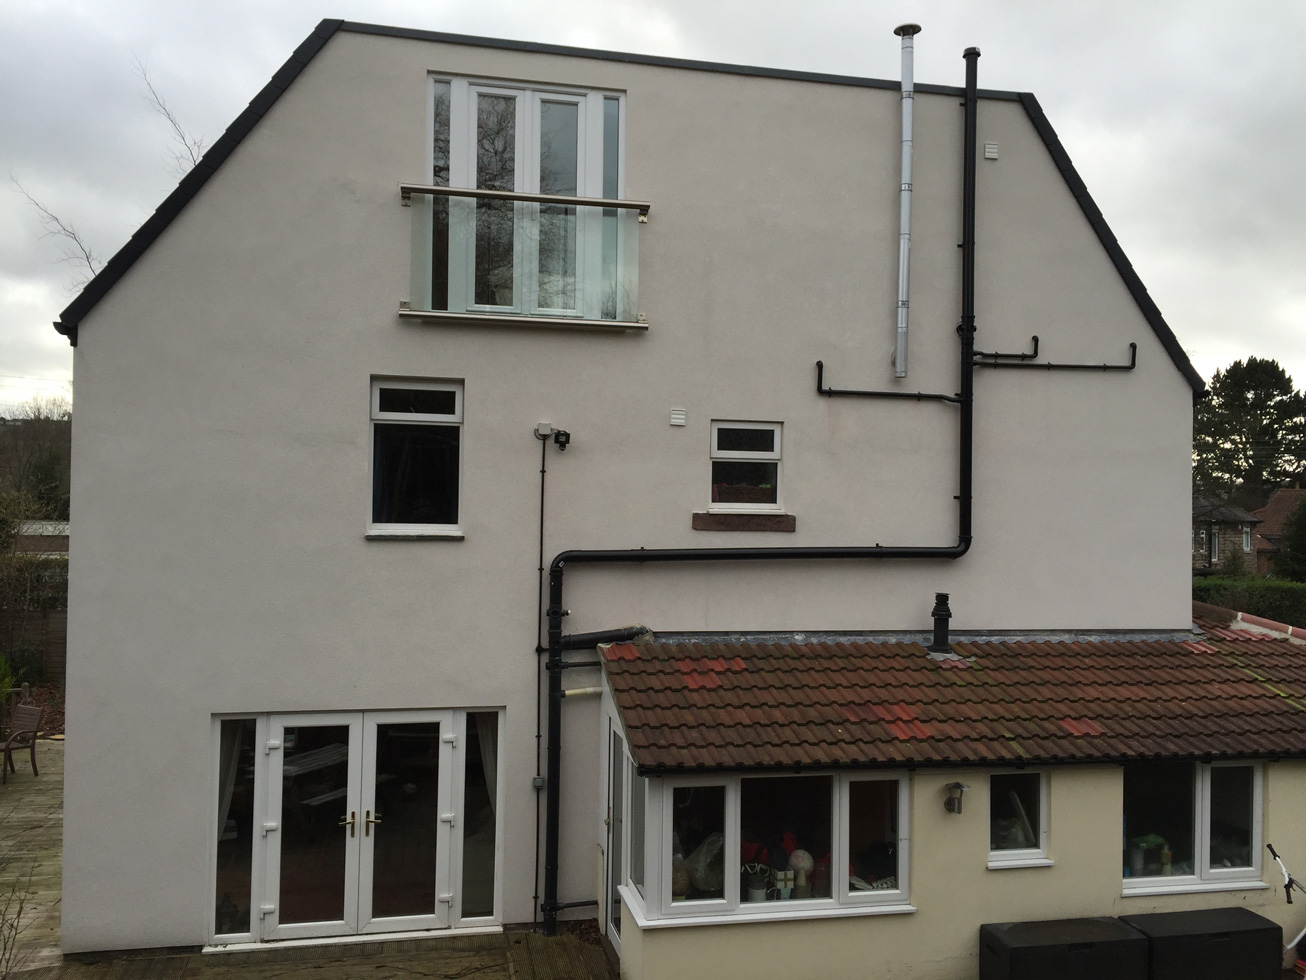 3rd Story Extension Master Bedroom Extension